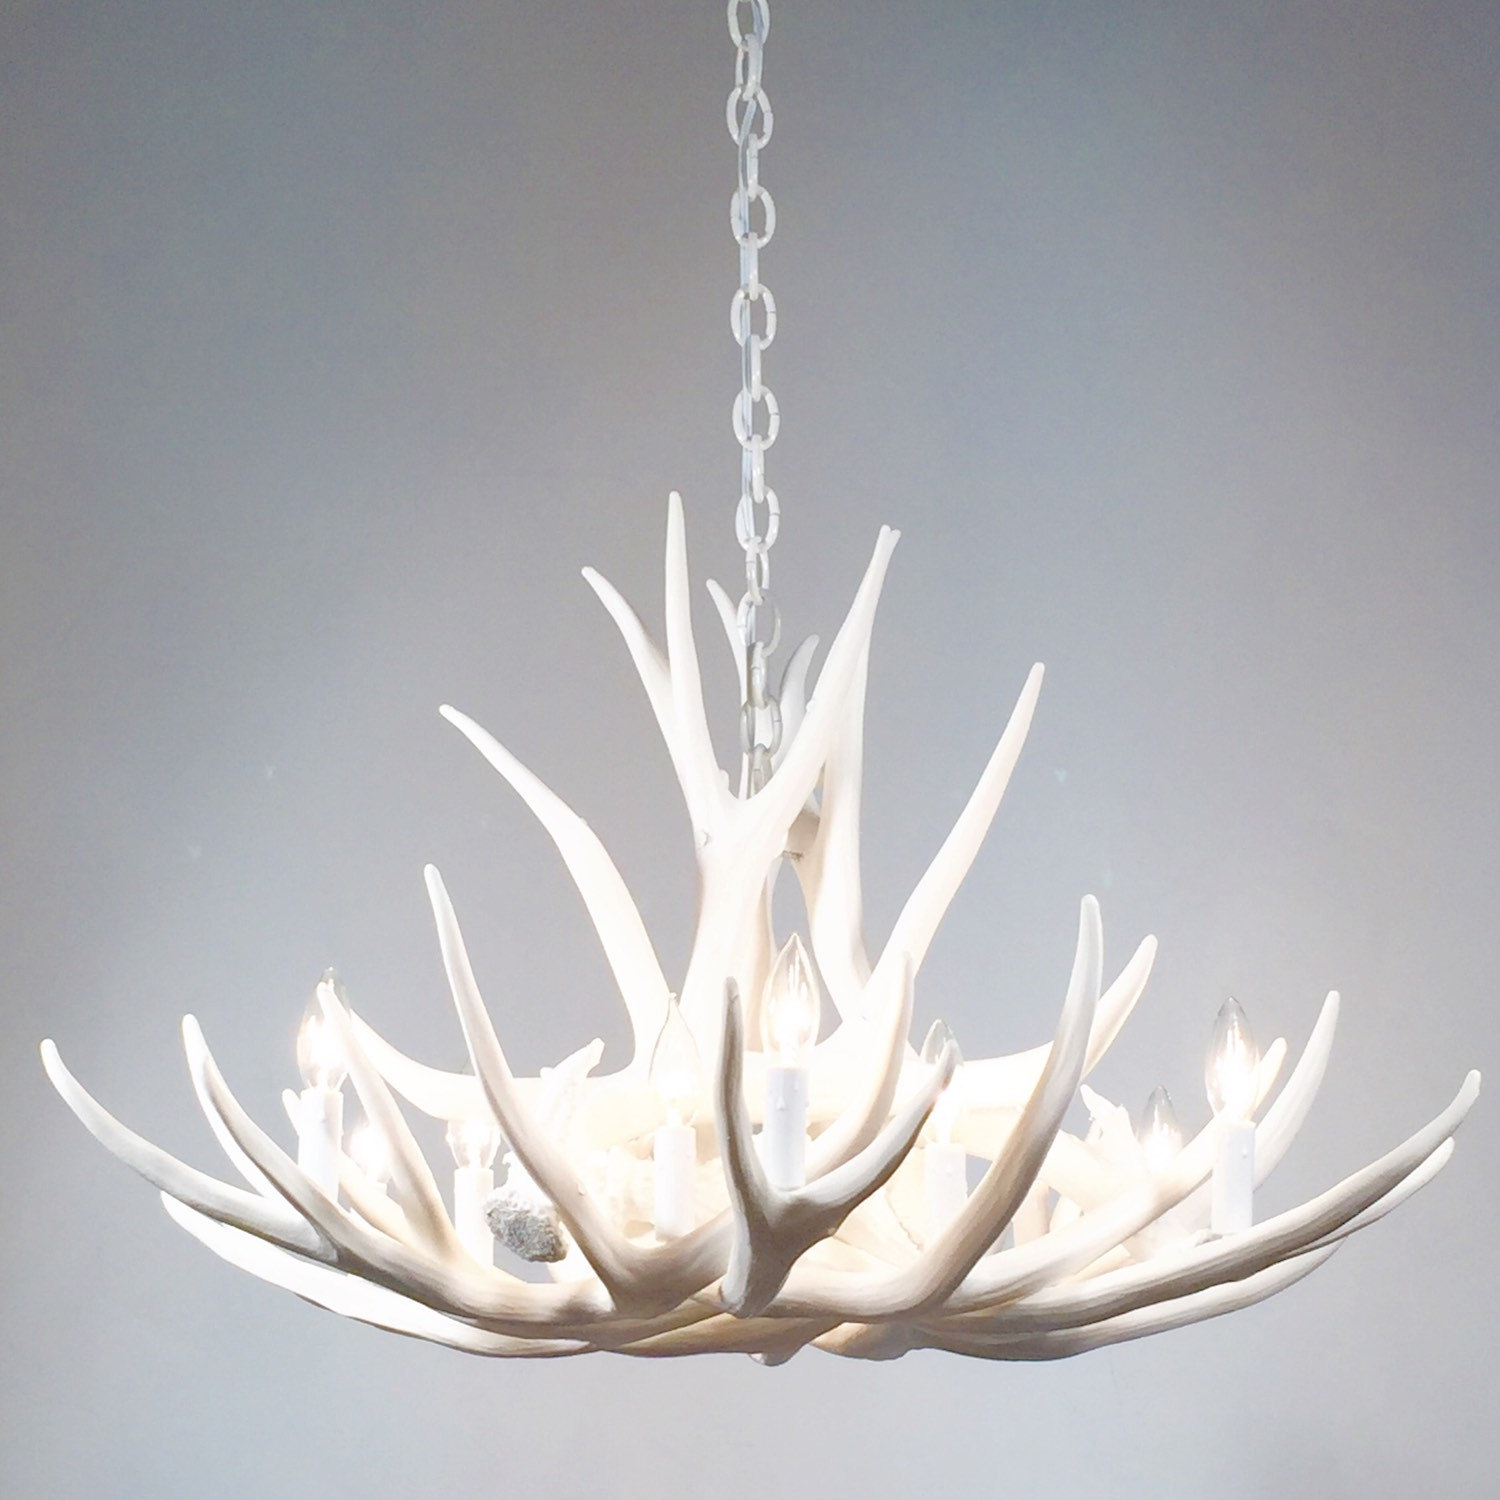 White Antler Chandelier Faux Deer Antler Chandelier D9 Throughout Stag Horn Chandelier (Image 15 of 15)